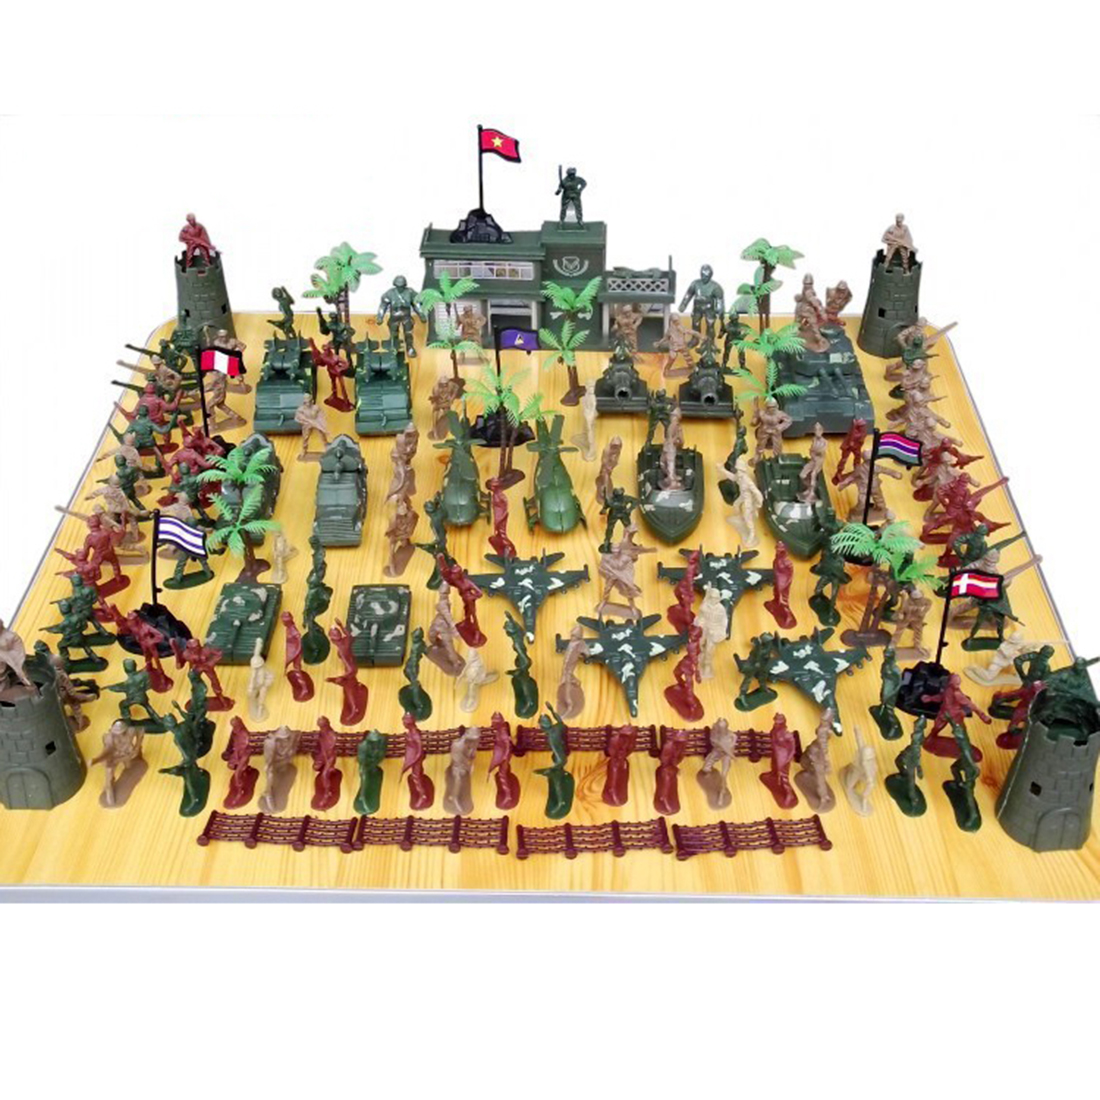 144Pcs 5cm Plastic Soldier Sand Table Scene Model World War II Soldier Military Toy Set for Children